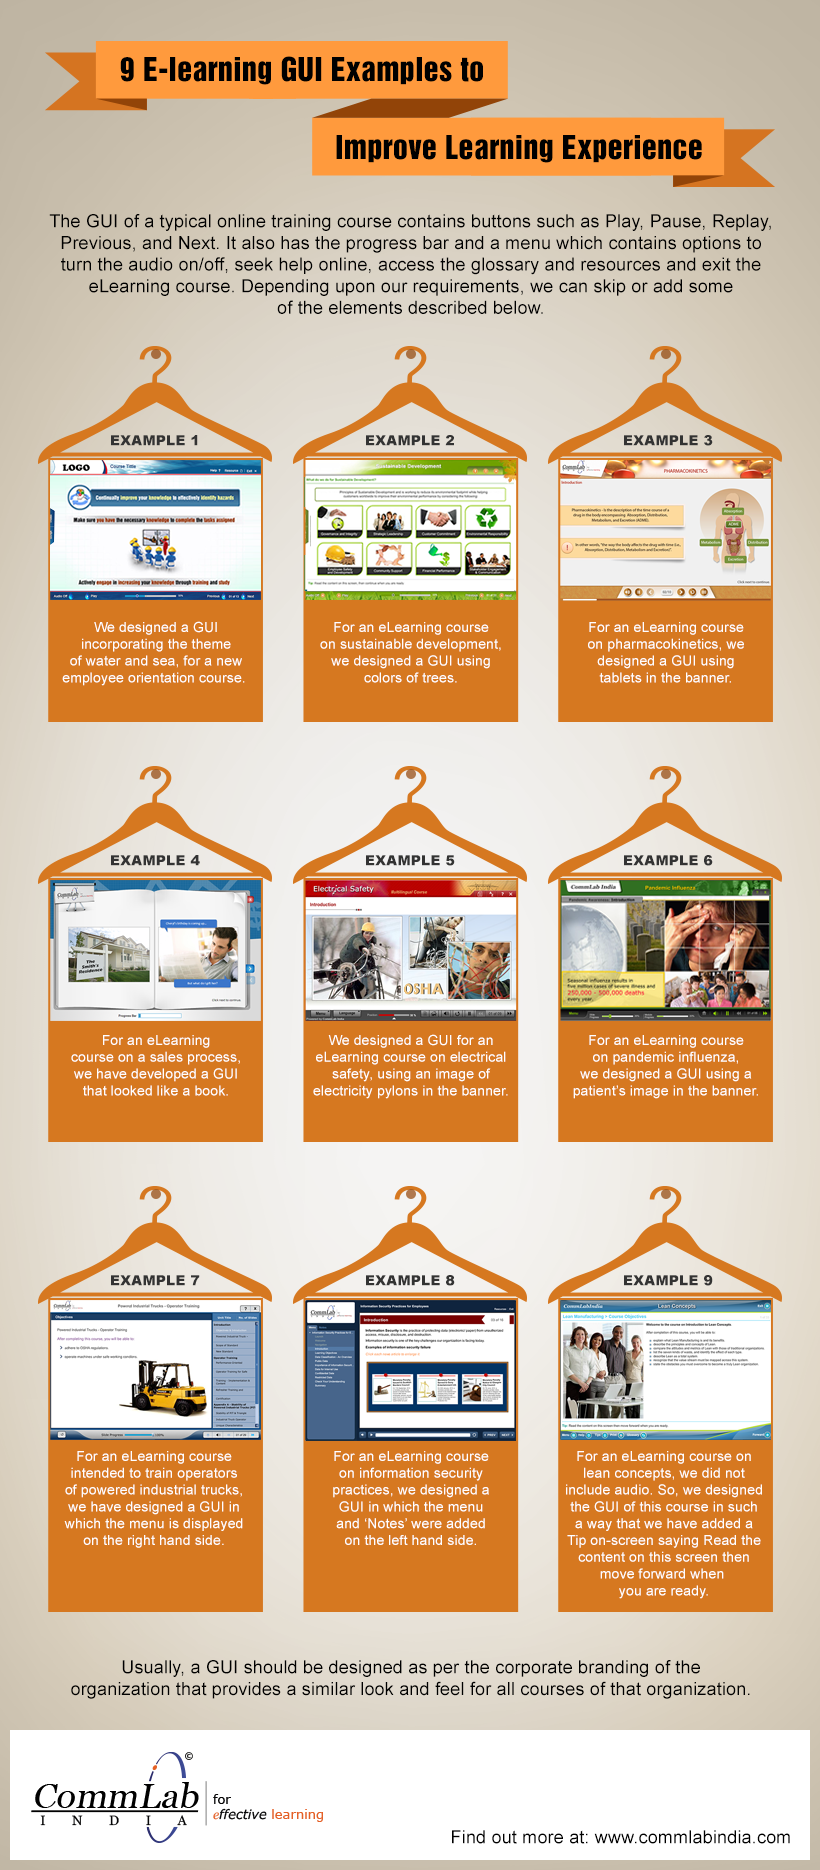 9 E-learning GUI Examples to Improve Learning Experience - An Infographic